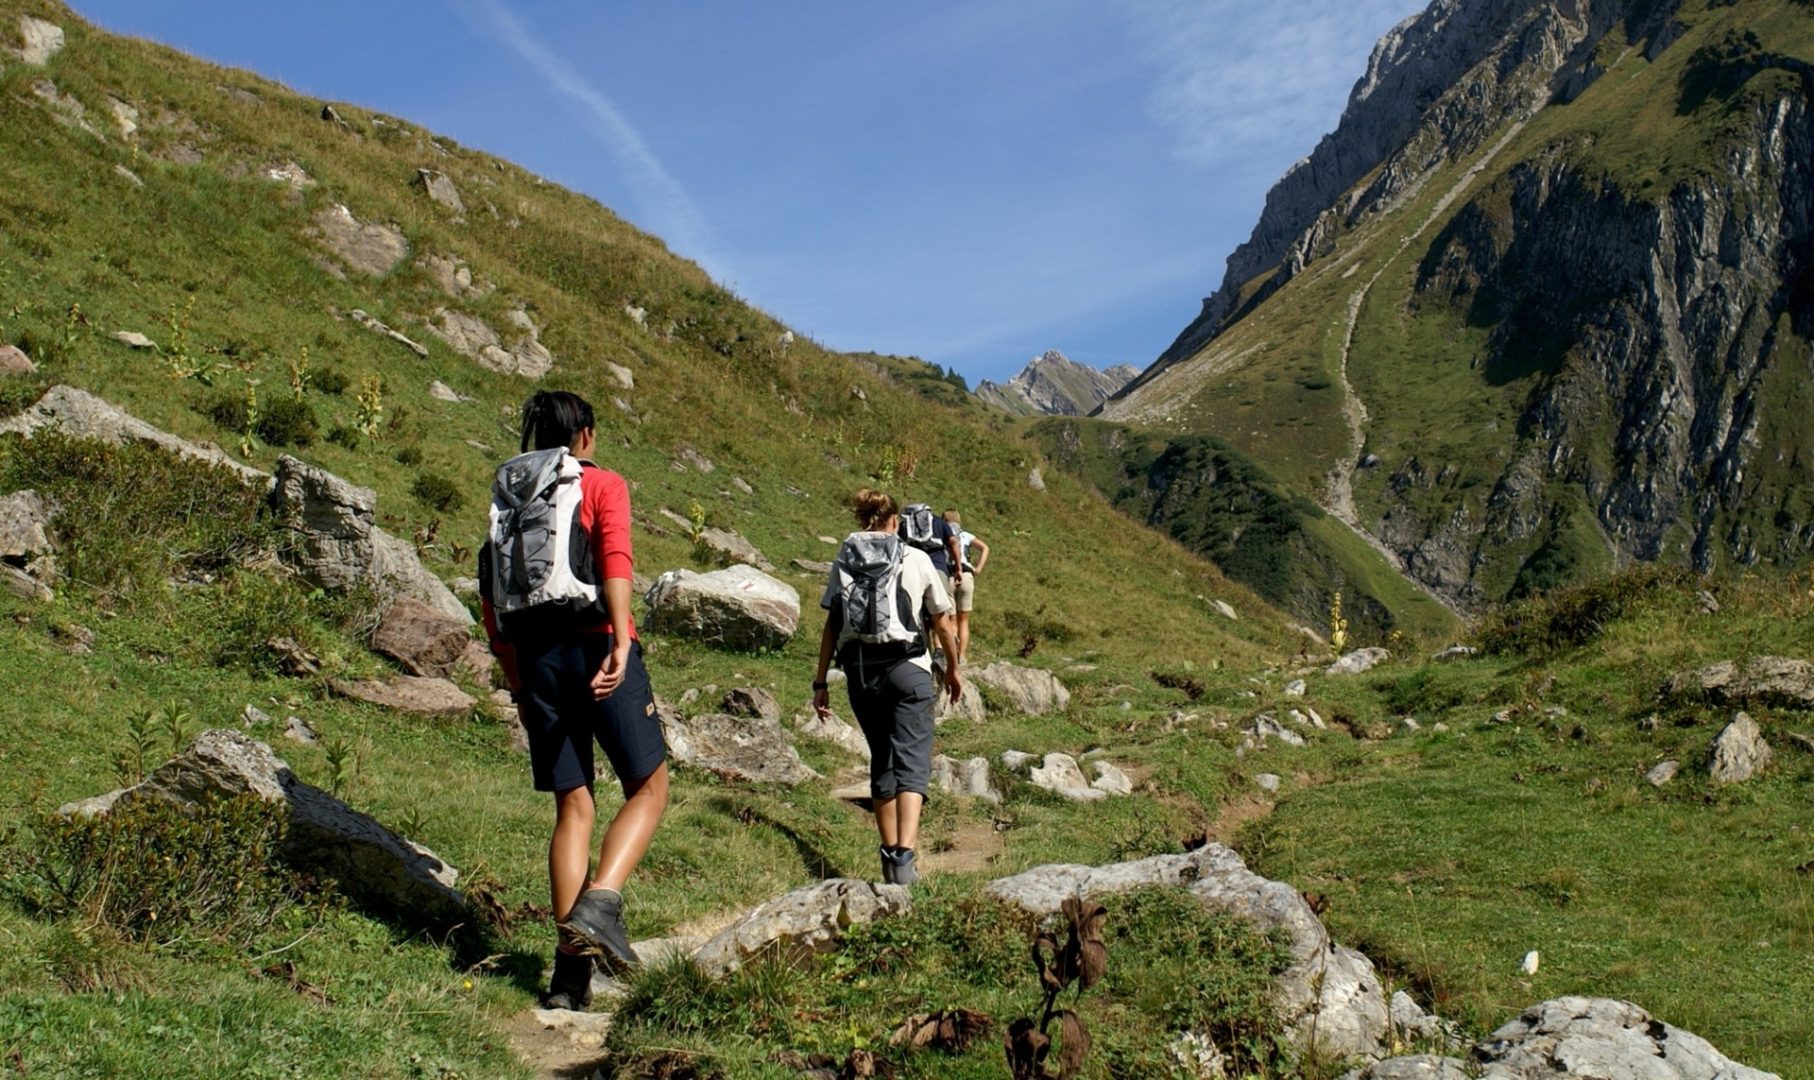 Trekking in summer is a must